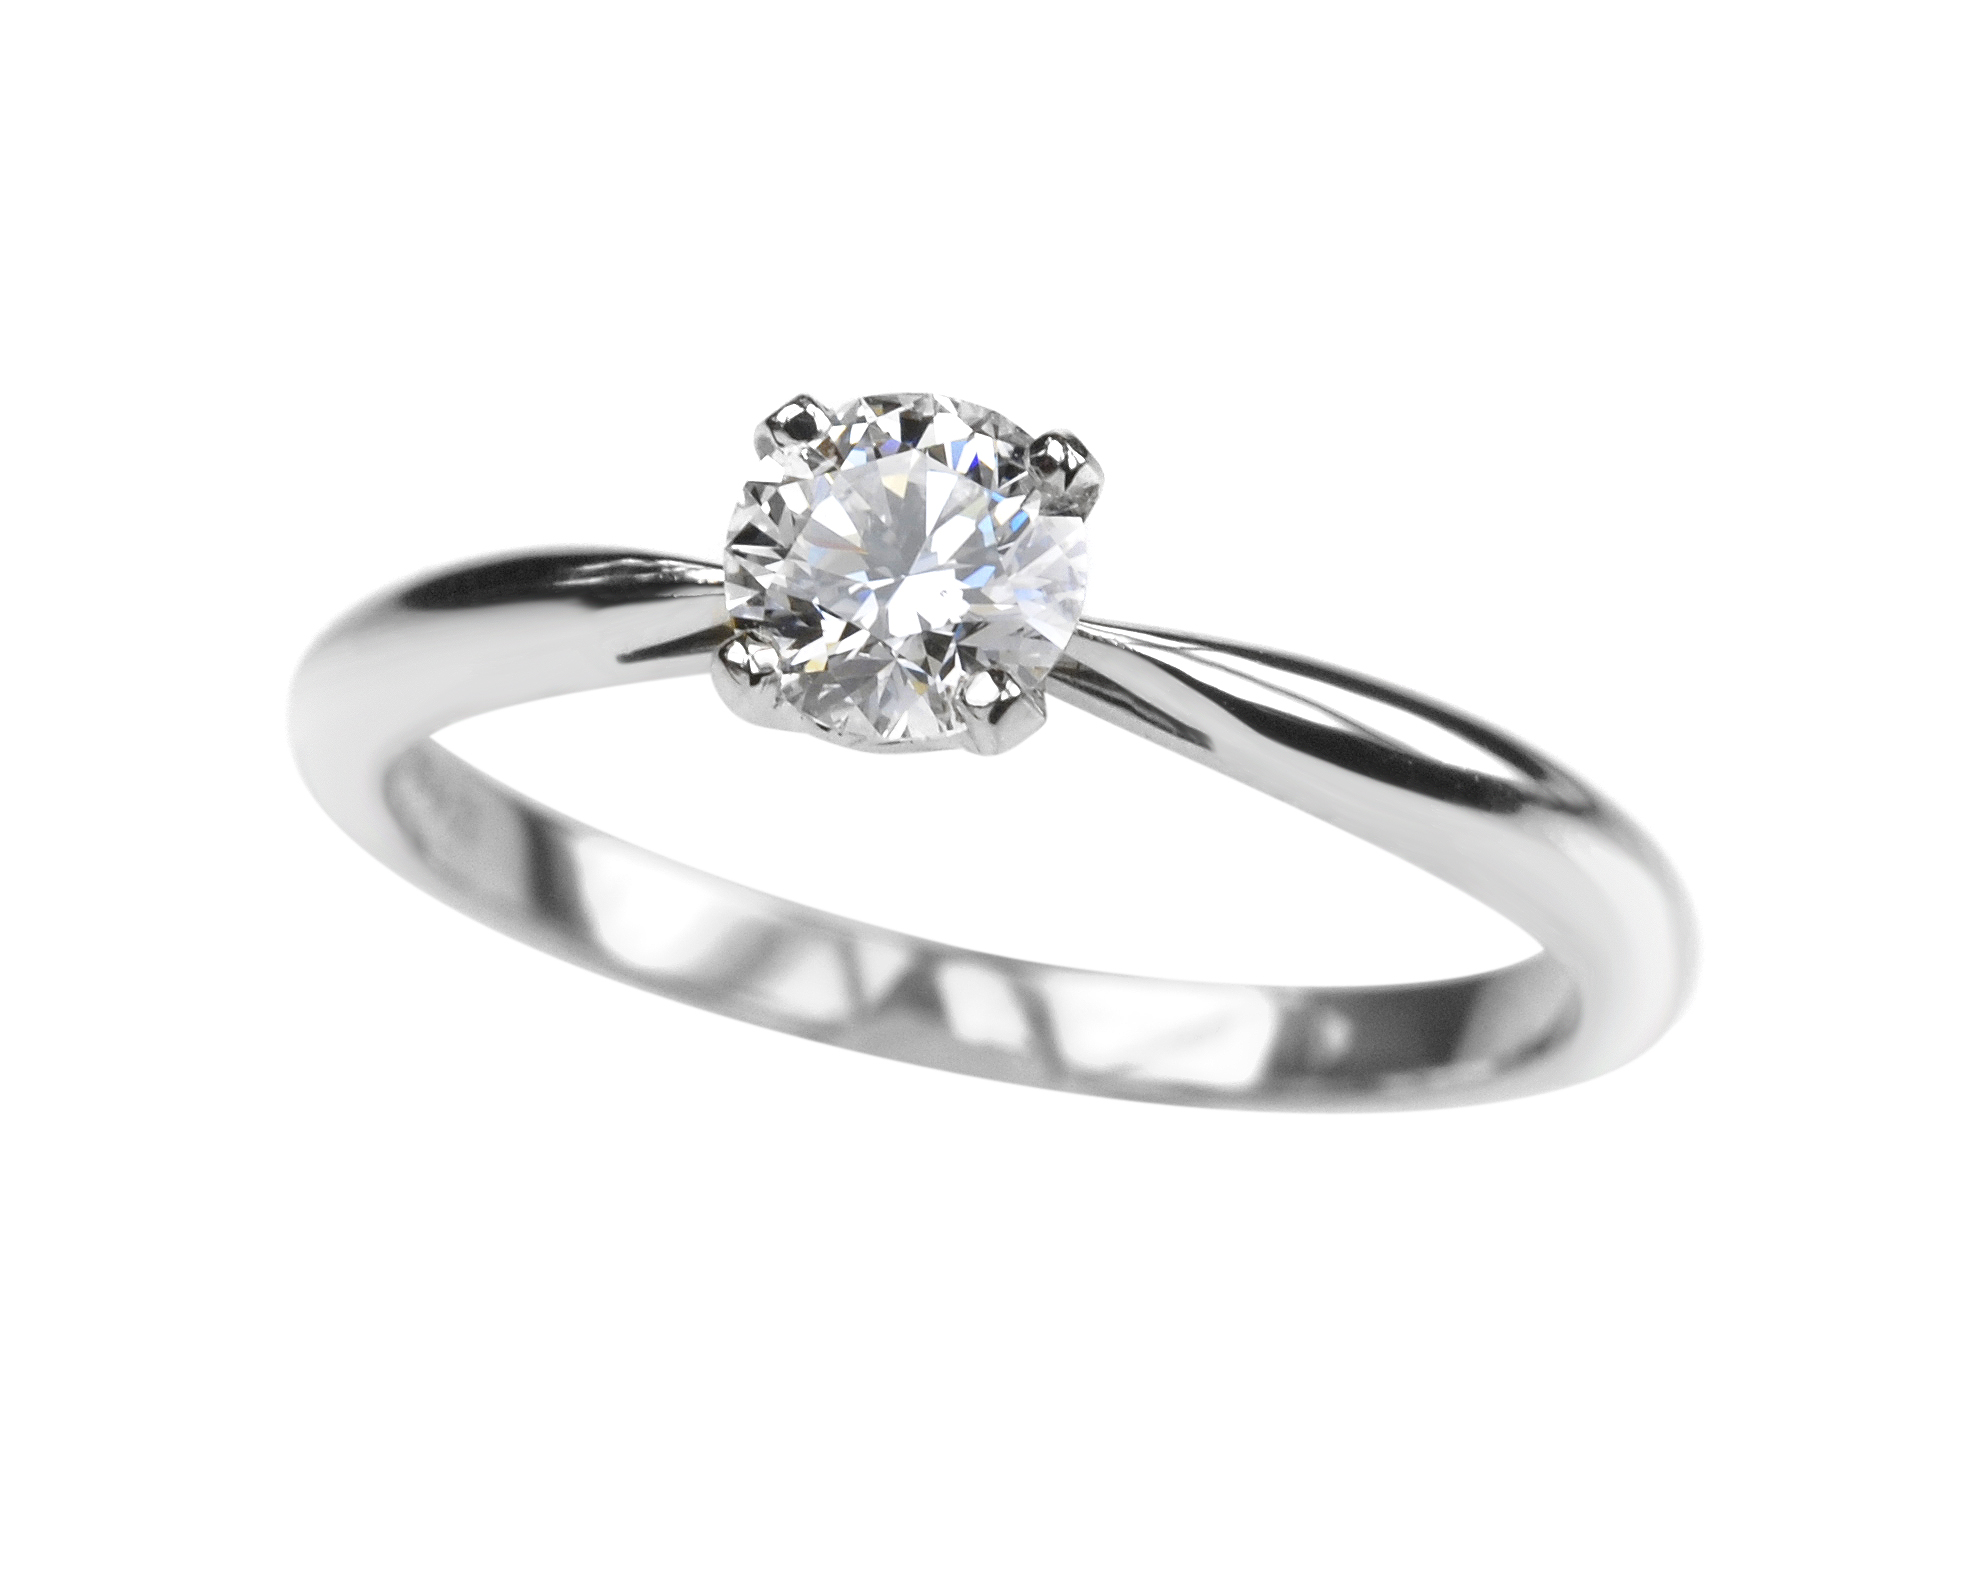 diamond engagement product jewellers square ic dimond qitok pagespeed bems ring bouquet ben moss rings